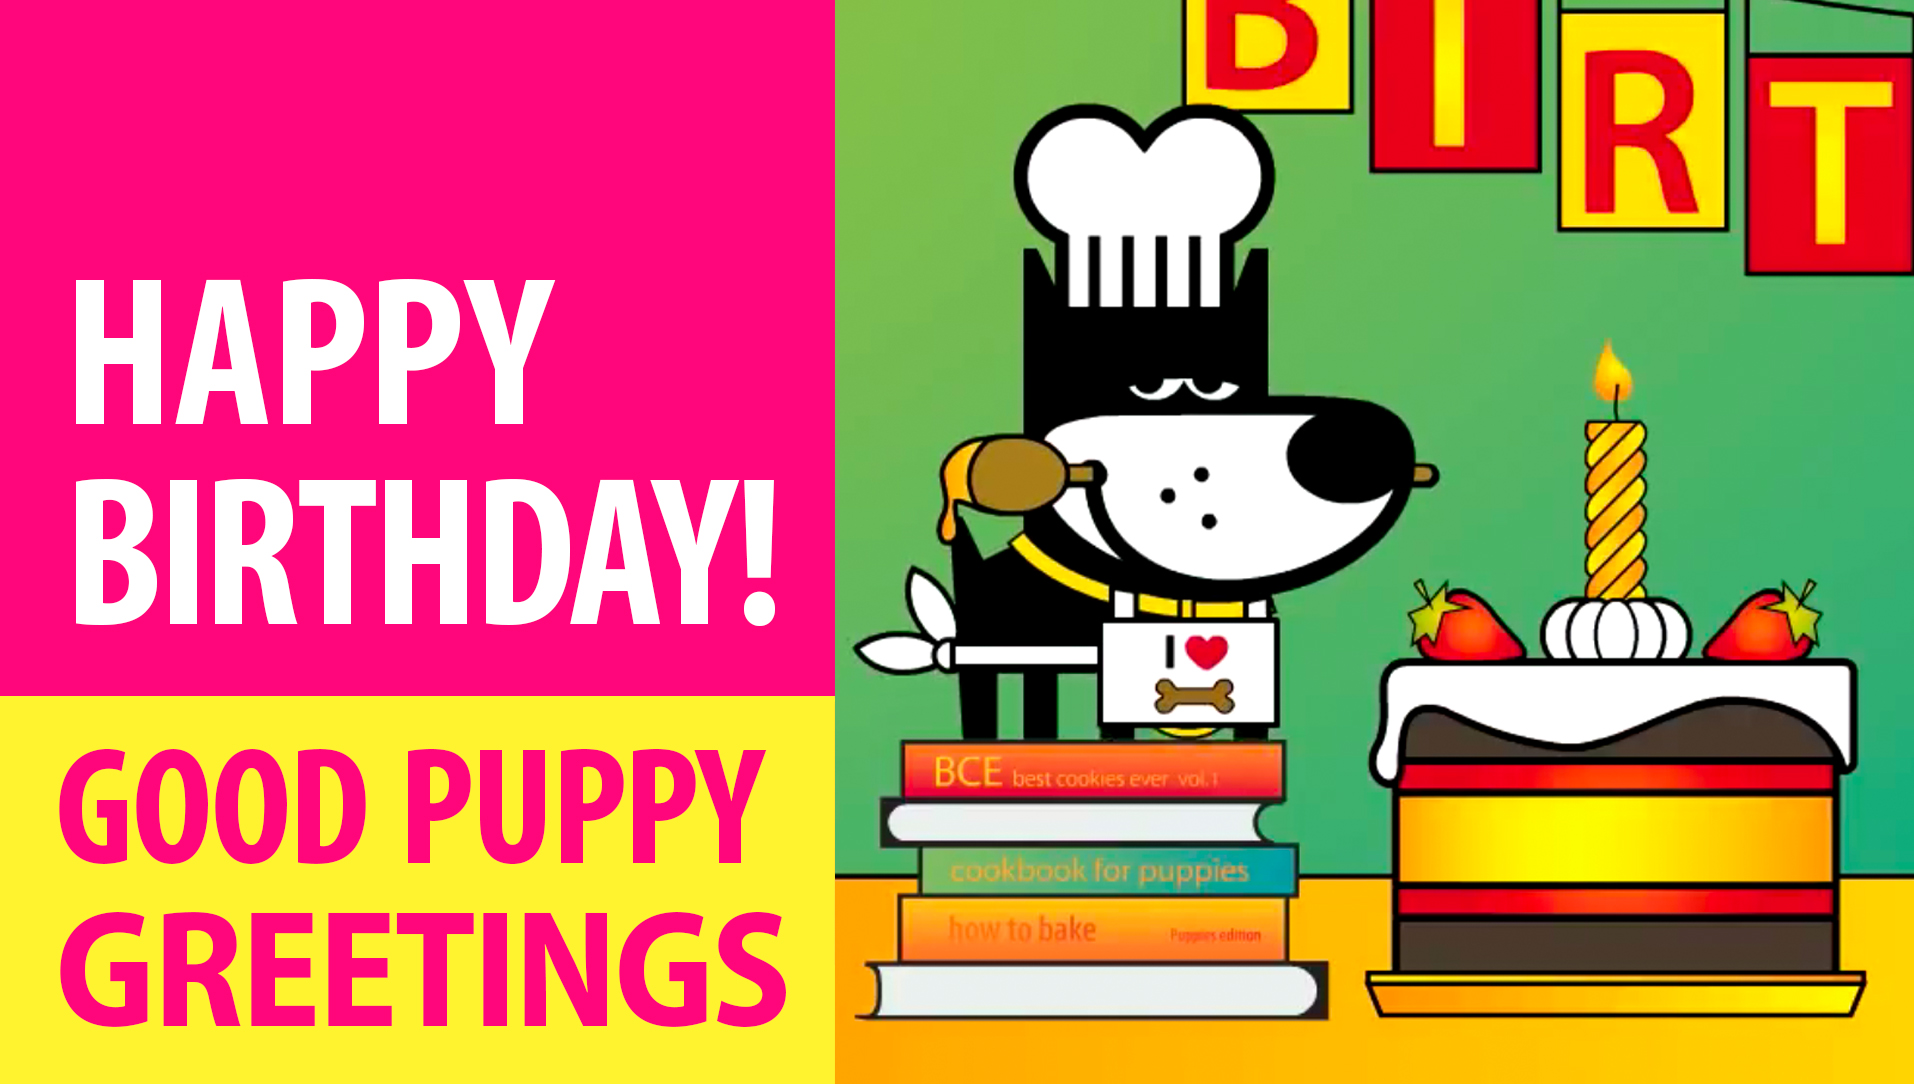 Happy Birthday! Animated Greeting Cards - Free E-Cards By GOOD PUPPY